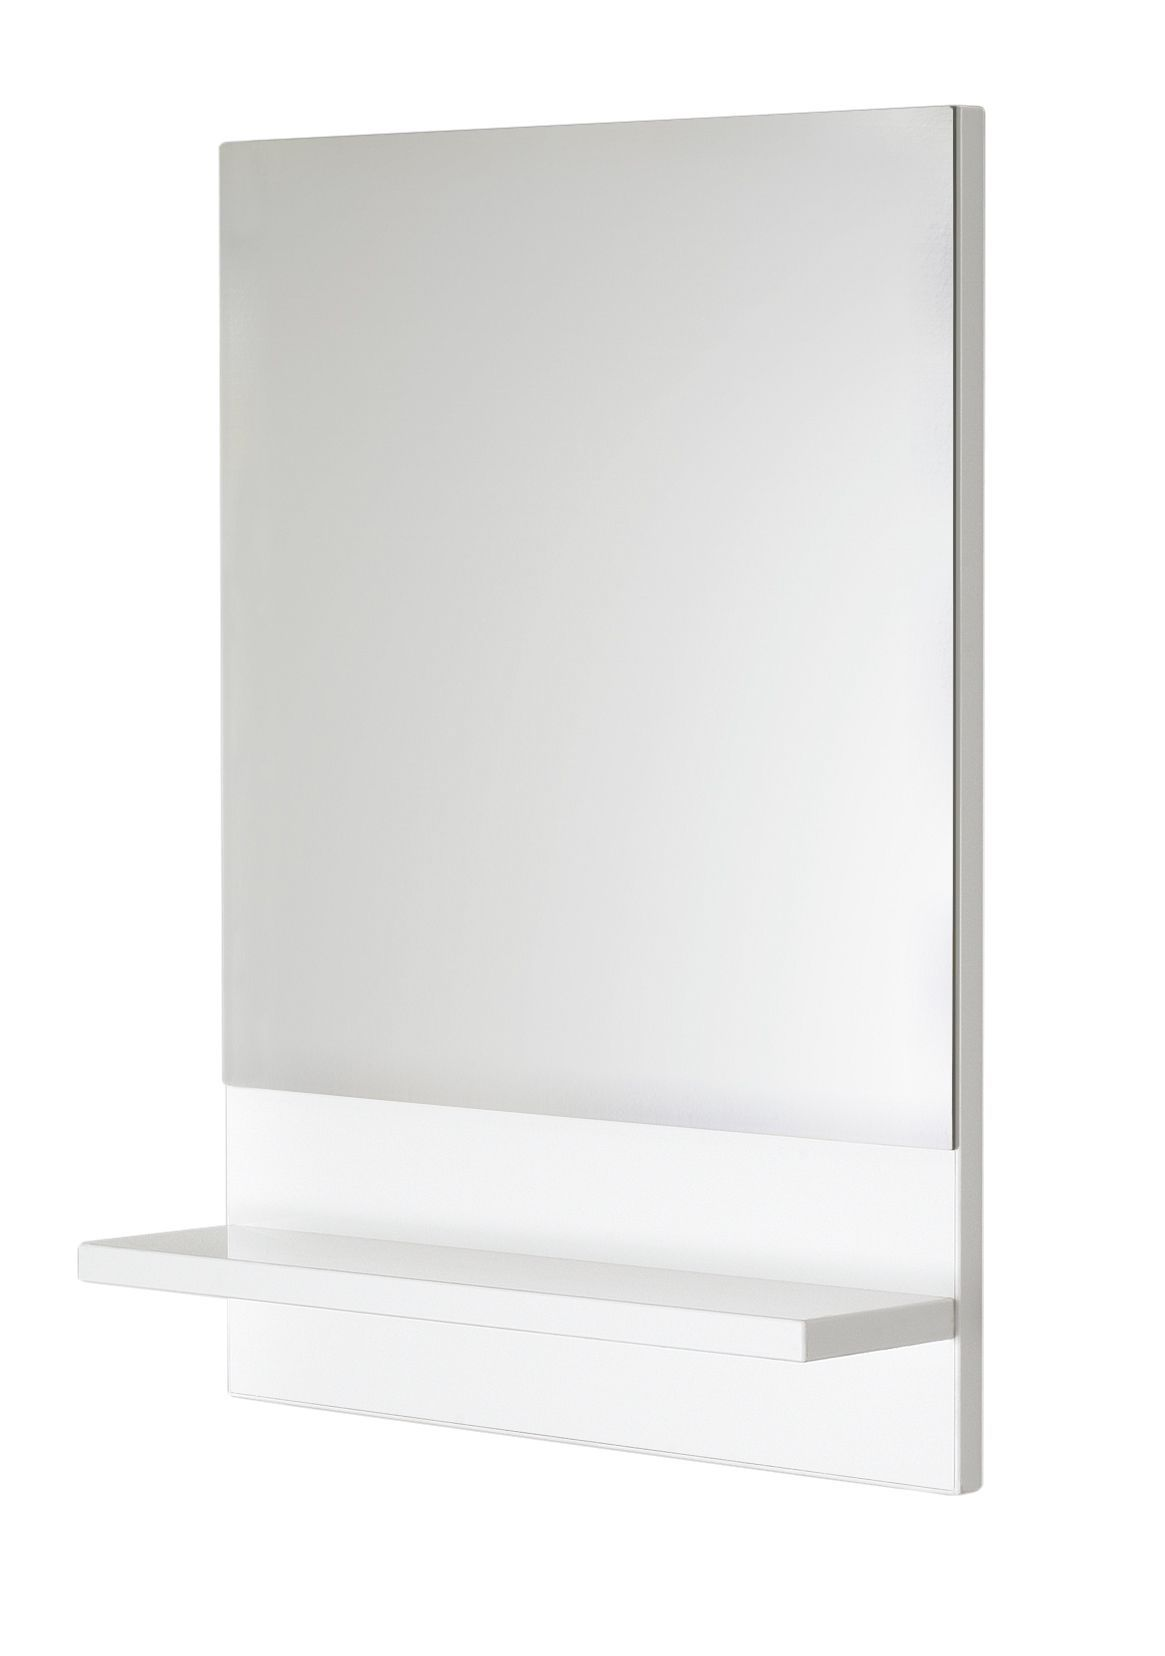 Cooke and lewis bathroom mirrors - Cooke Lewis Copenhagen Rectangular Wall Mirror With Shelf W 450mm H 600mm Departments Diy At B Q